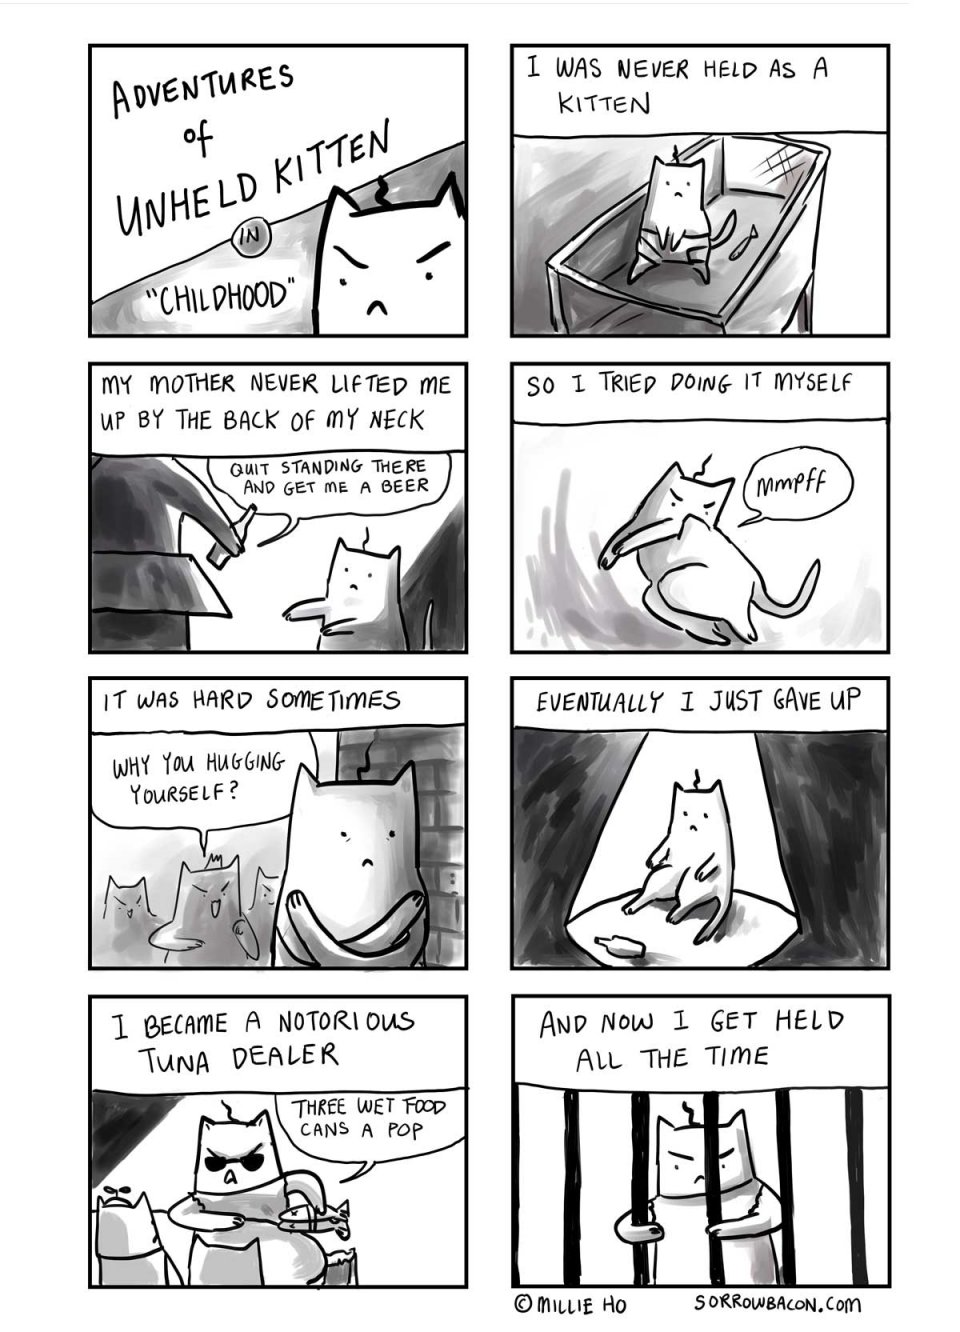 Sorrowbacon Unheld Kitten Millie Ho Cat Comic